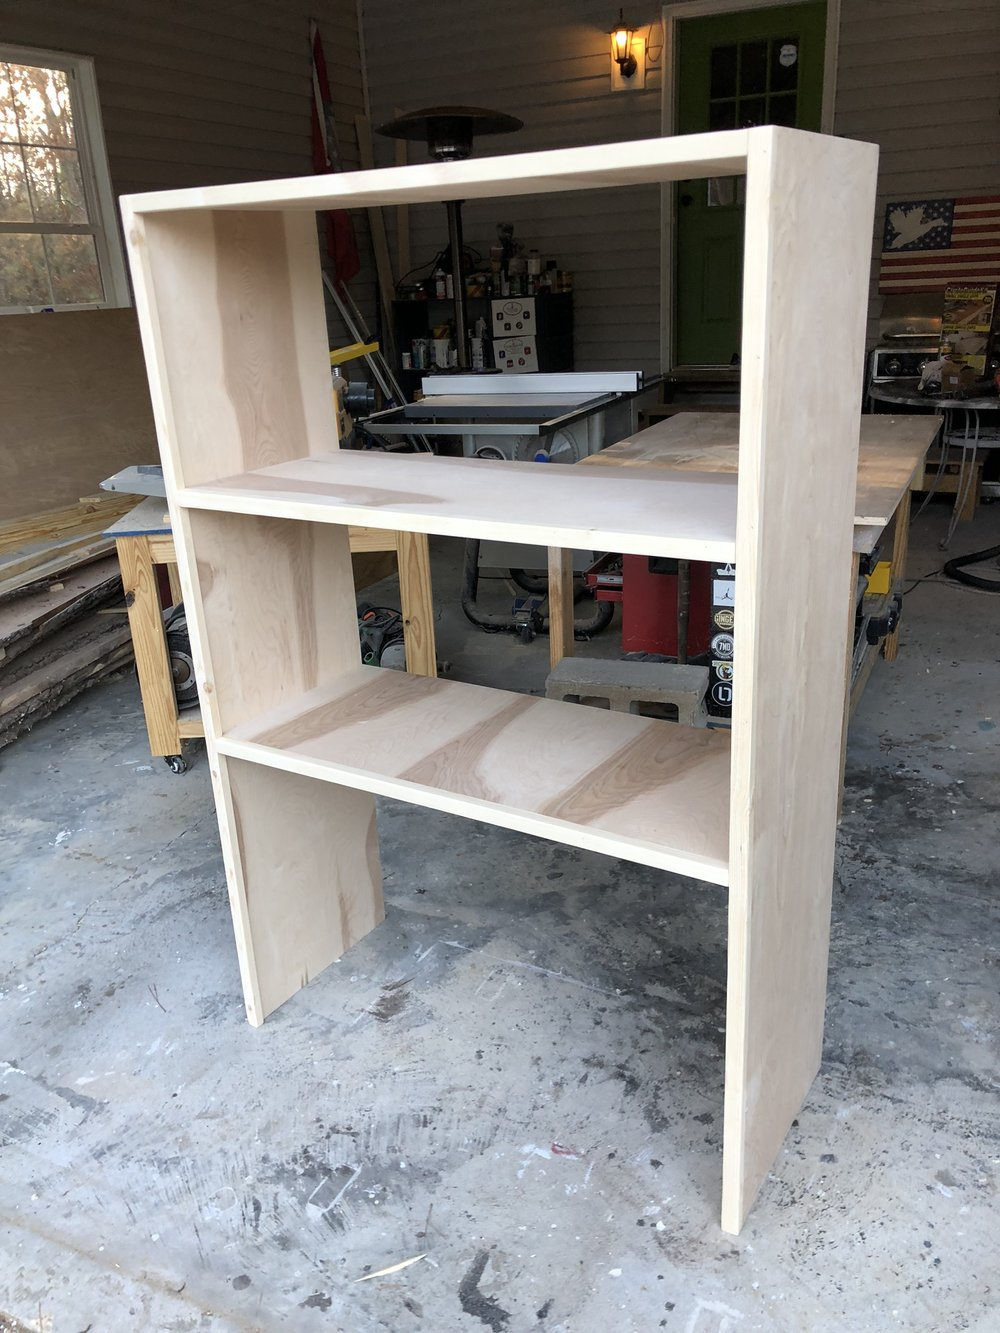 diy plywood shelves.jpeg